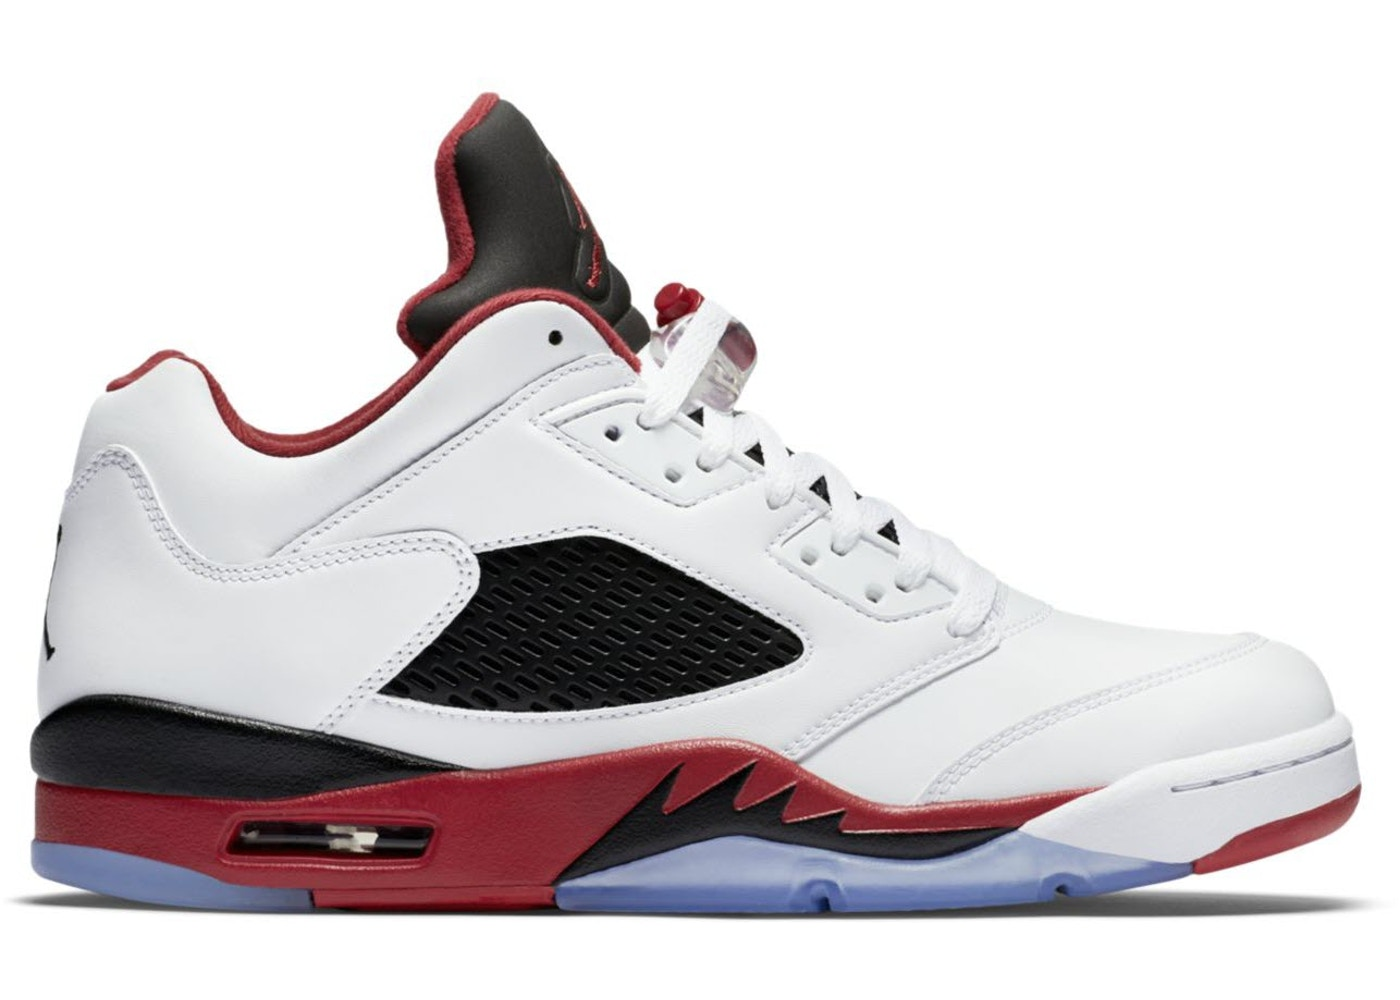 4e21a8f2 Jordan 5 Retro Low Fire Red - 819171-101